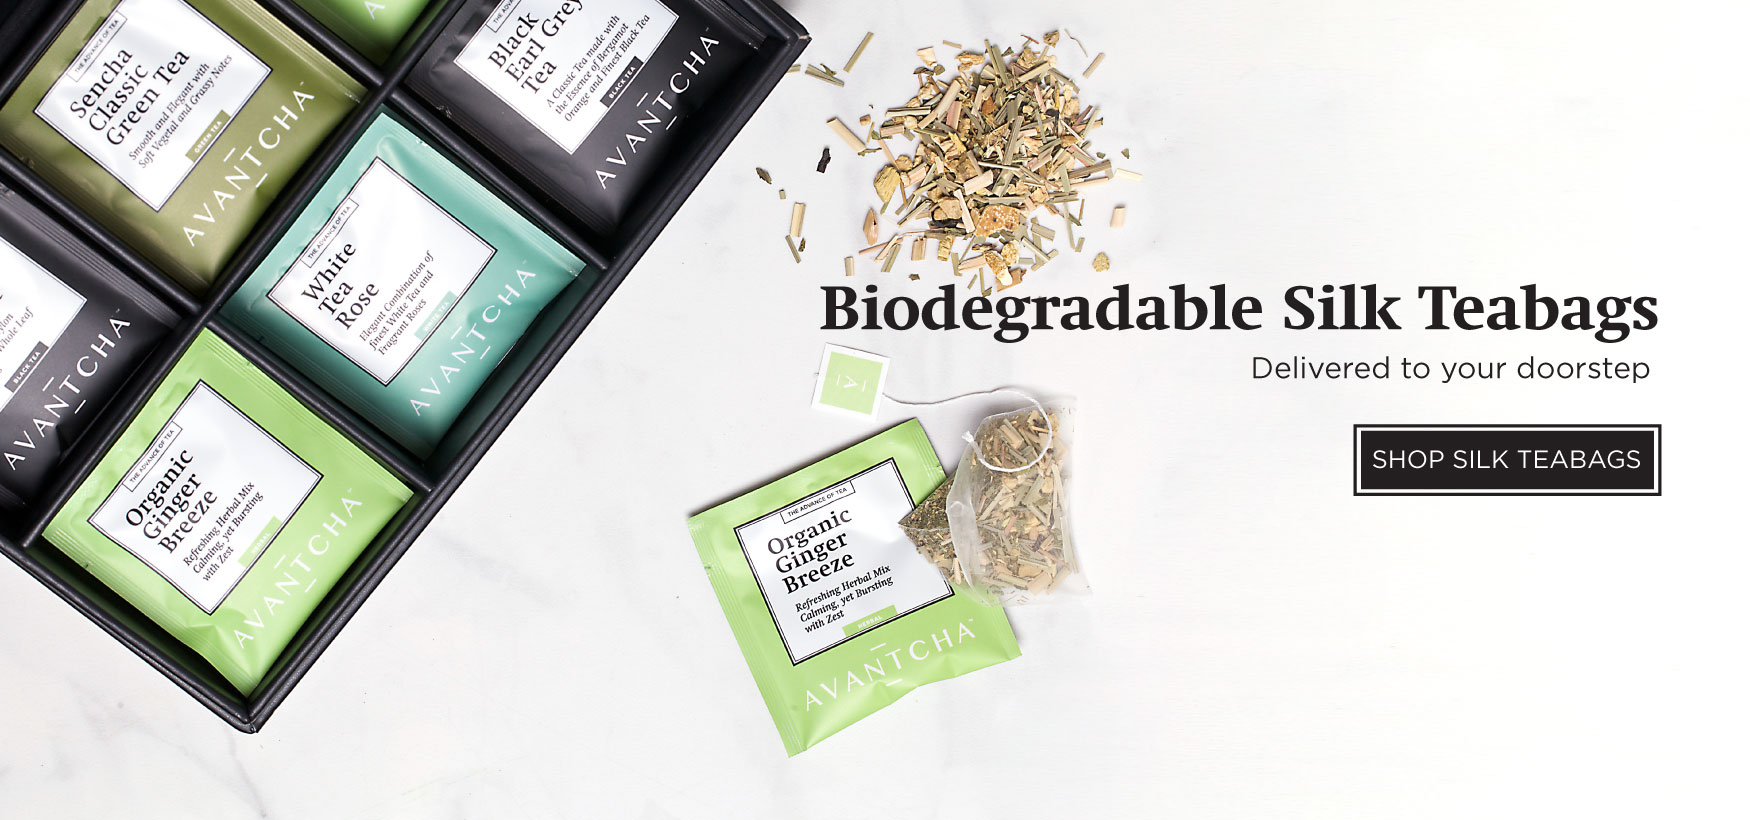 biodegradable-silk-teabags-banner